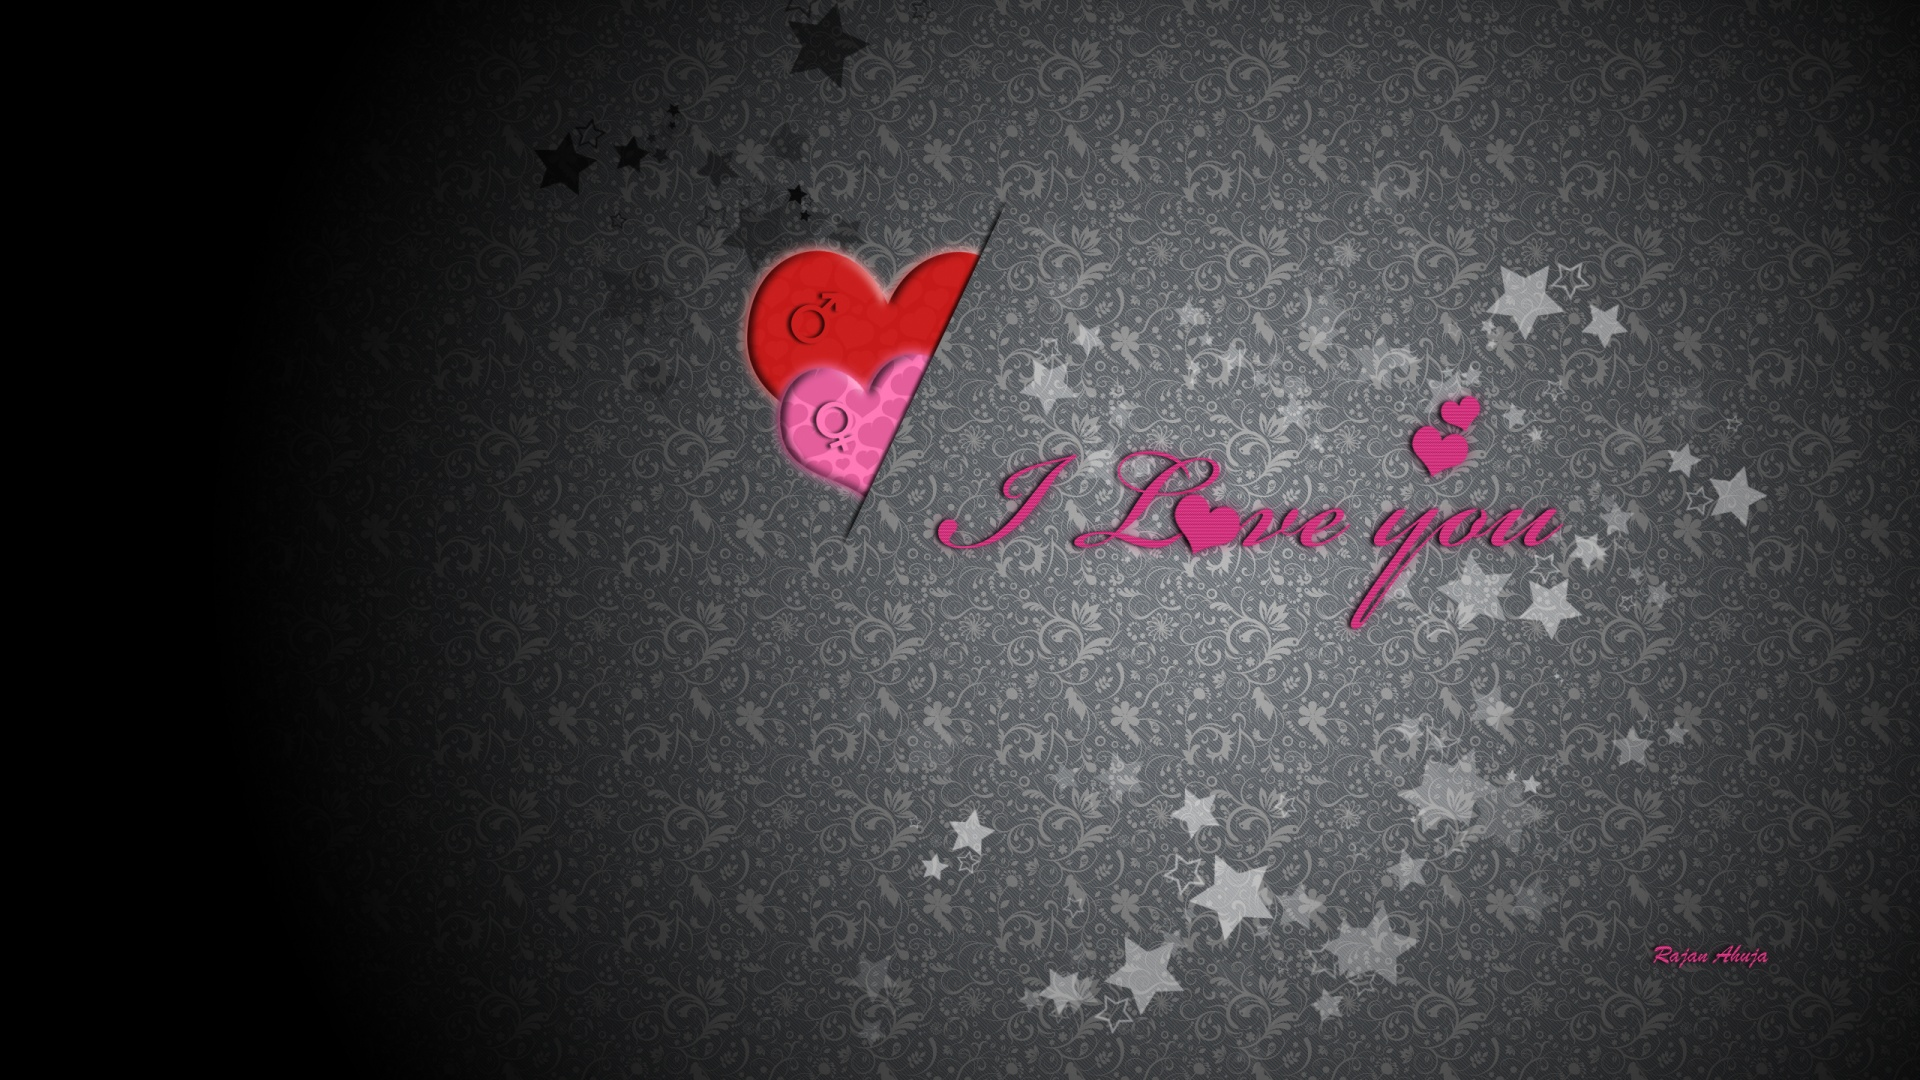 1920x1080 I love you desktop Pc and Mac wallpaper